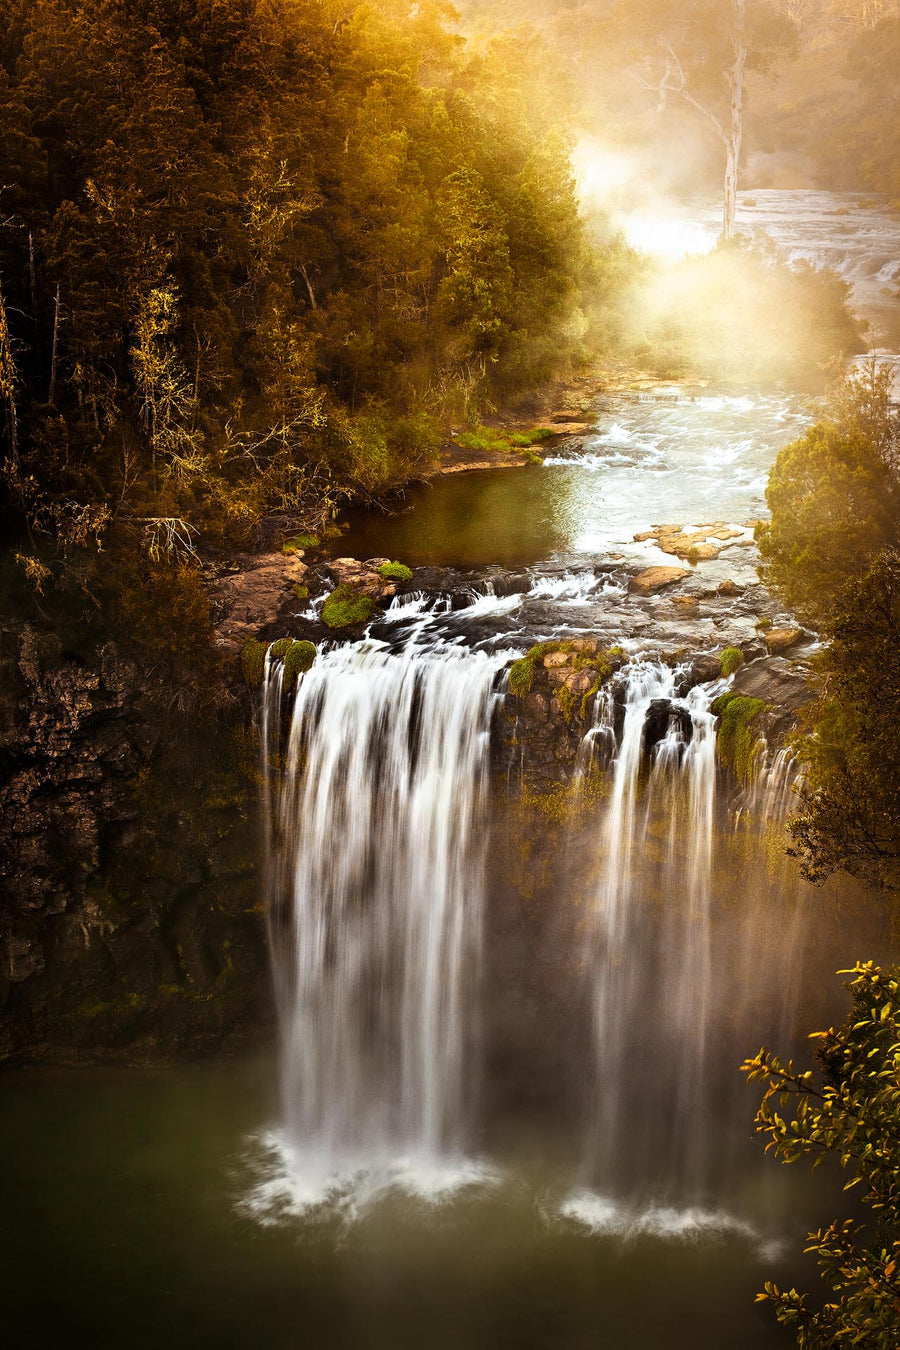 Dangar Falls, Dorrigo, NSW | Christian Fletcher Photo Images | Landscape Photography Australia